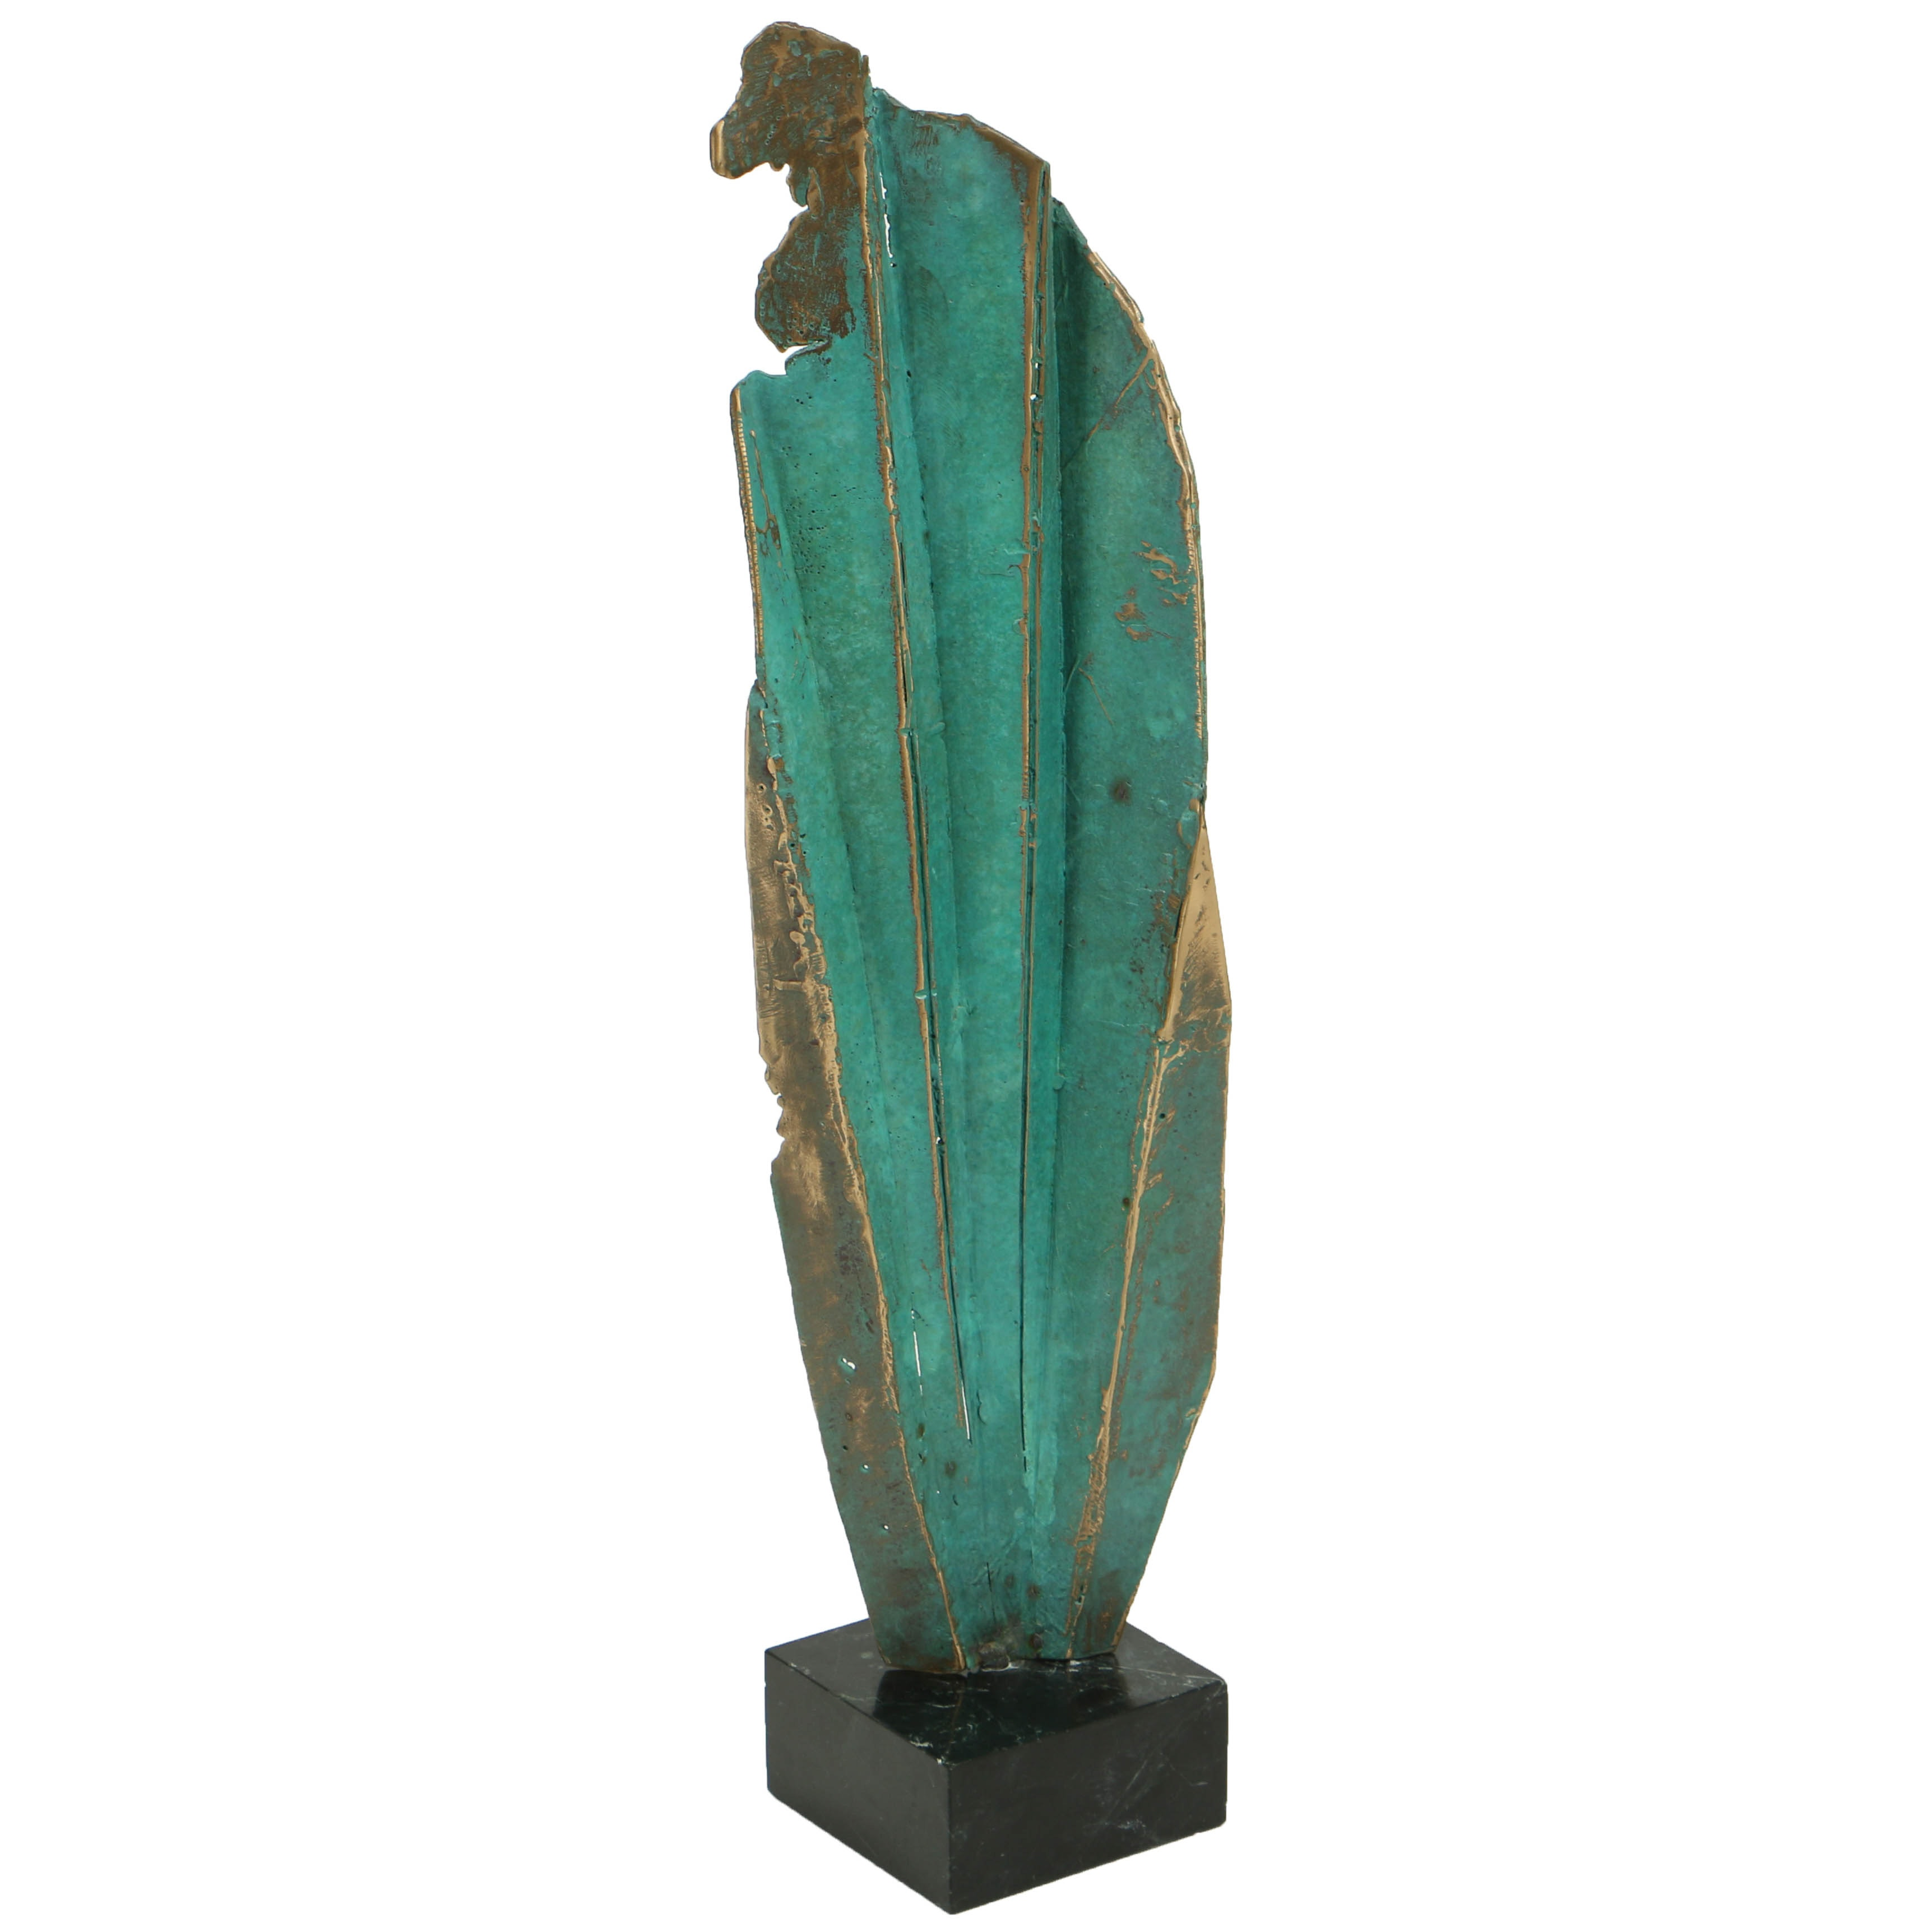 Contemporary Bronze Sculpture on Marble Base